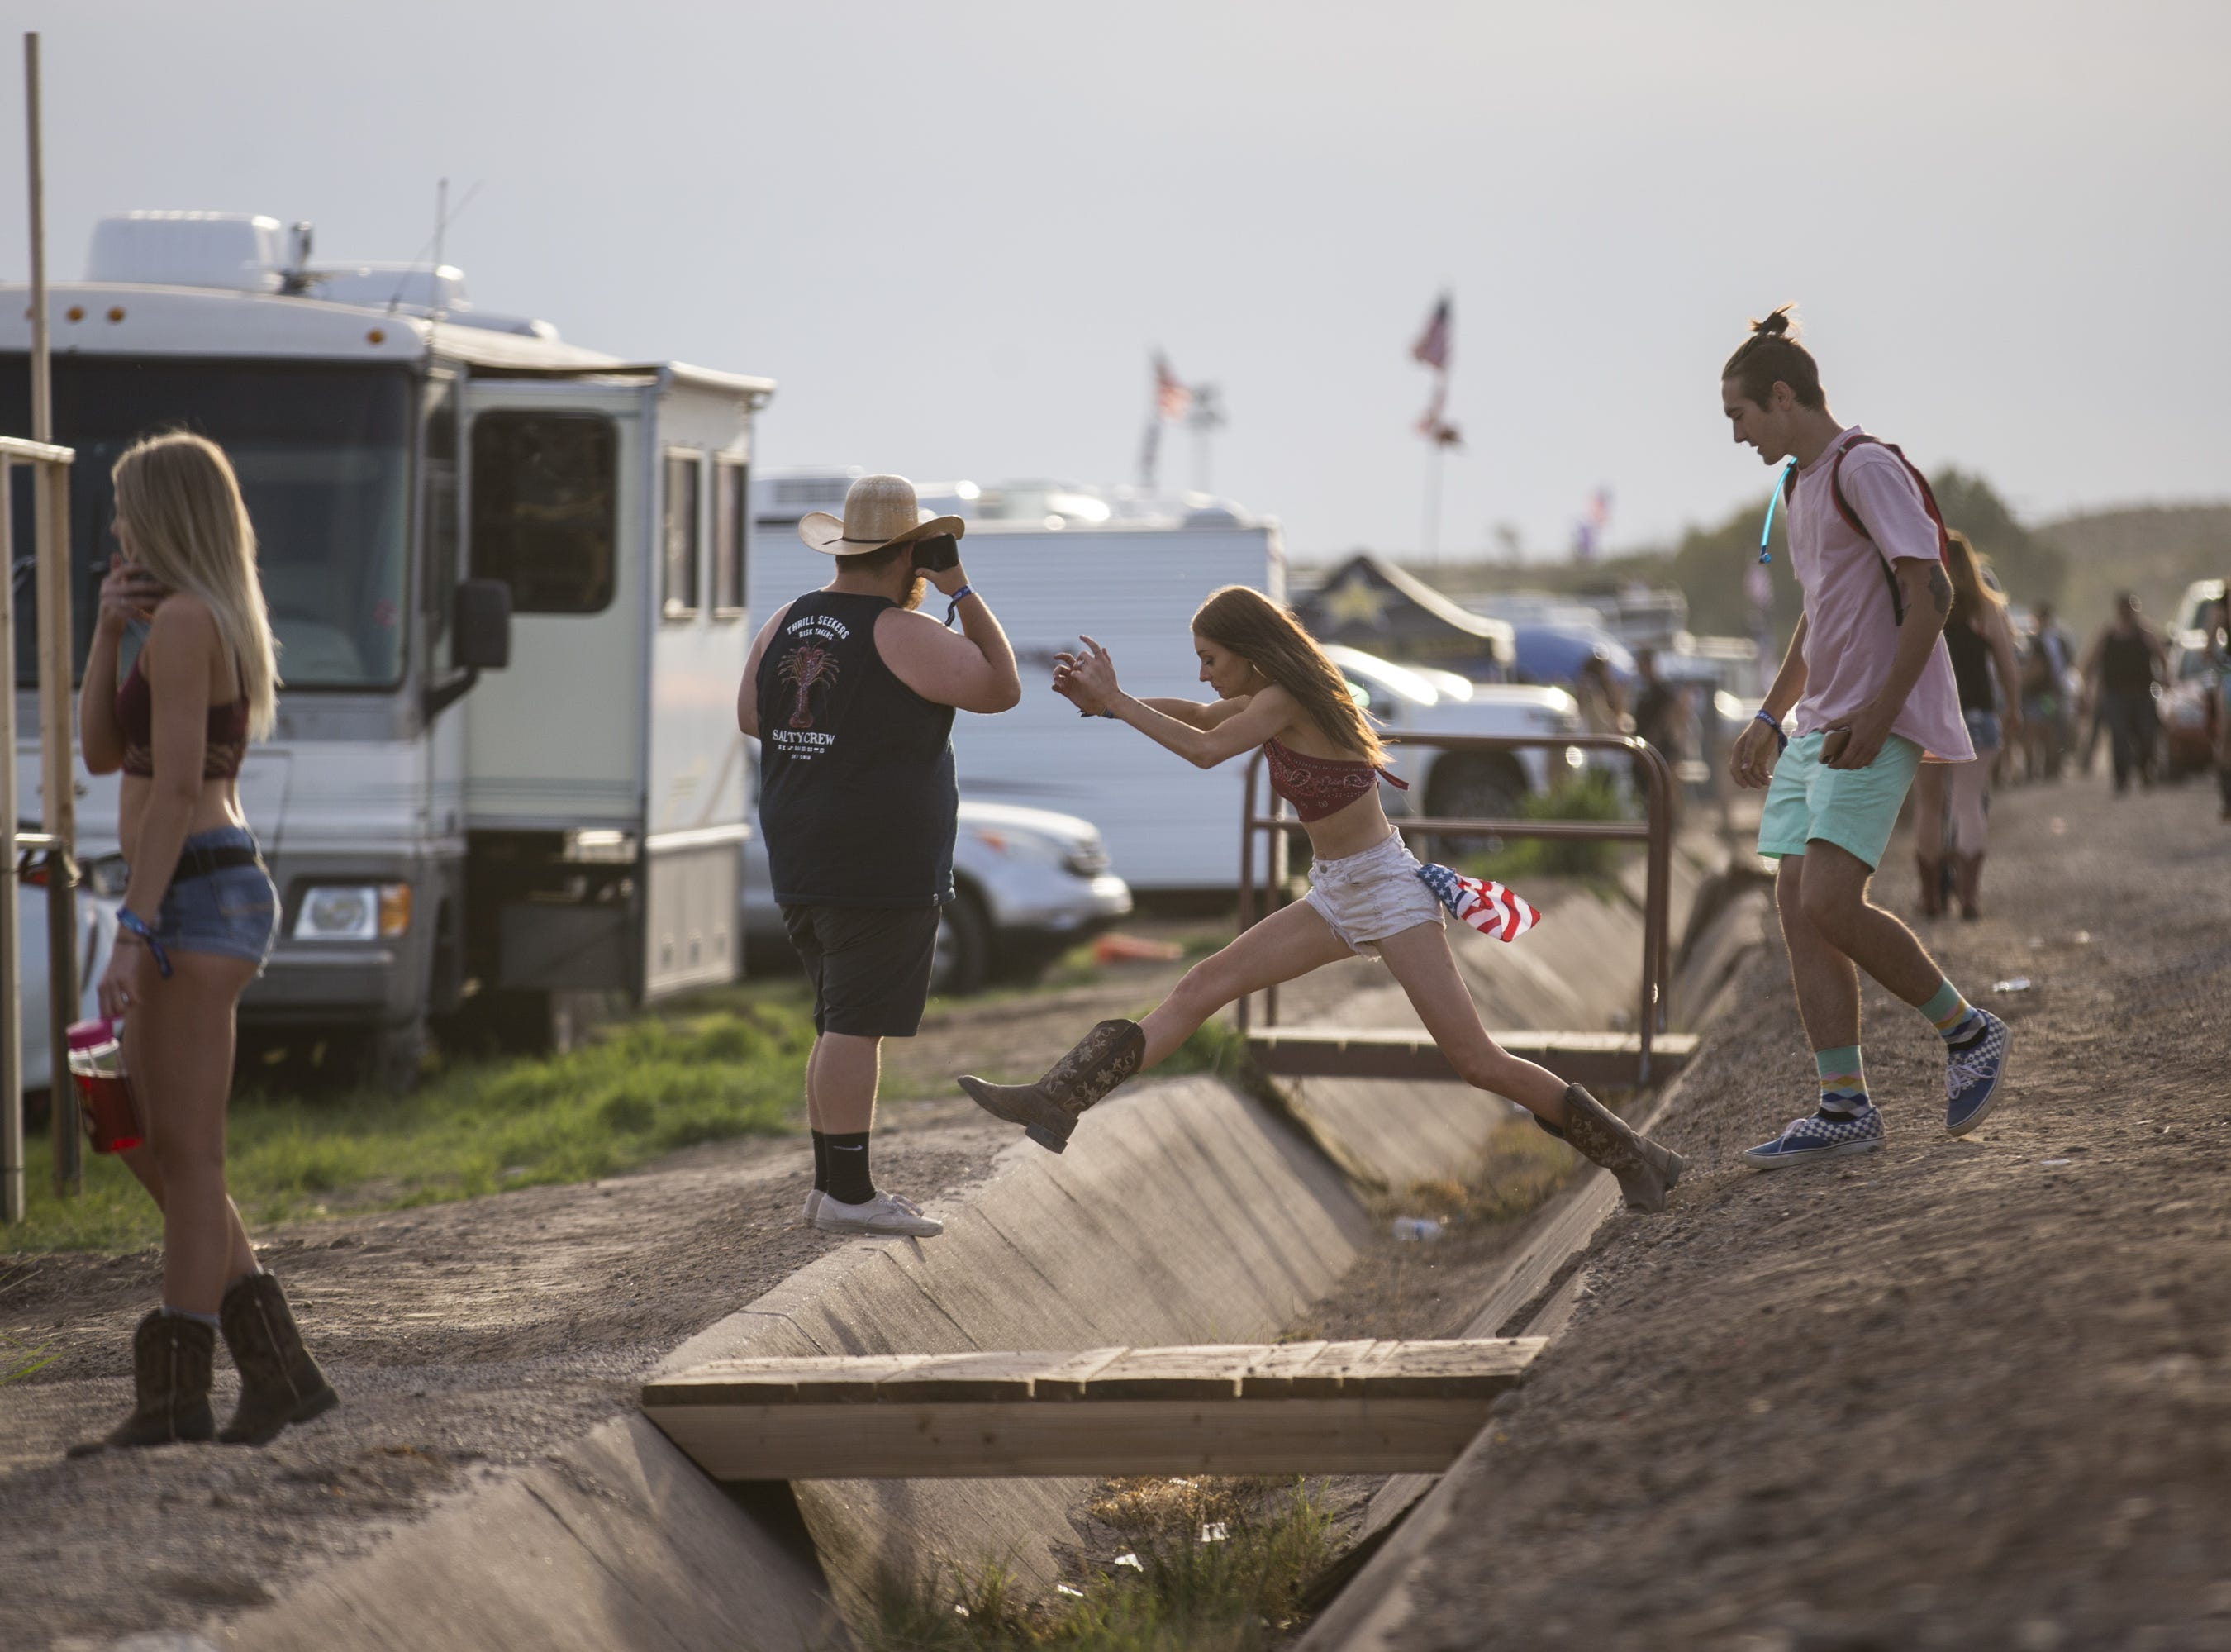 Festival-goers cross a drainage ditch on April 11, 2019, during Day 1 of Country Thunder Arizona in Florence.